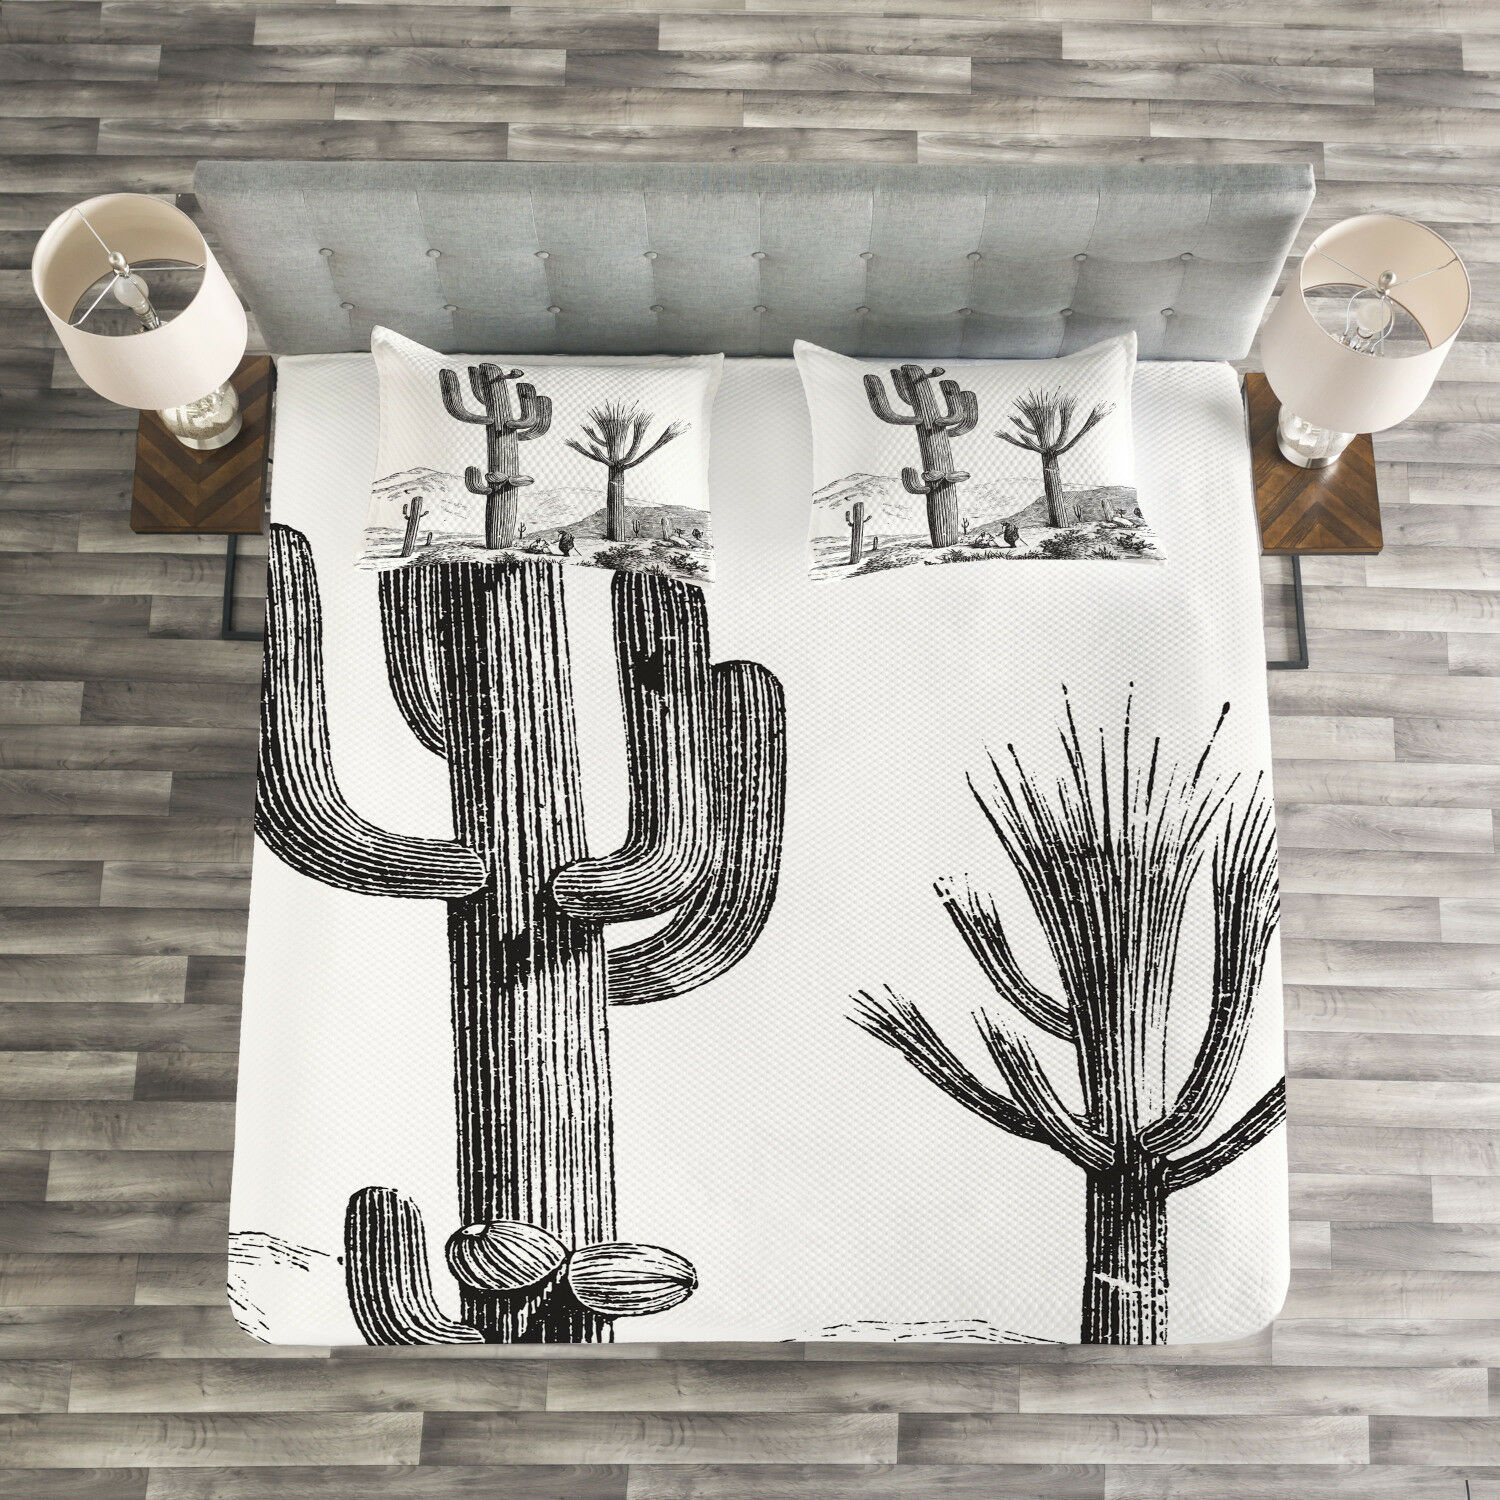 Desert Quilted Bedspread & Pillow Shams Set, Sketchy Mexican View Print